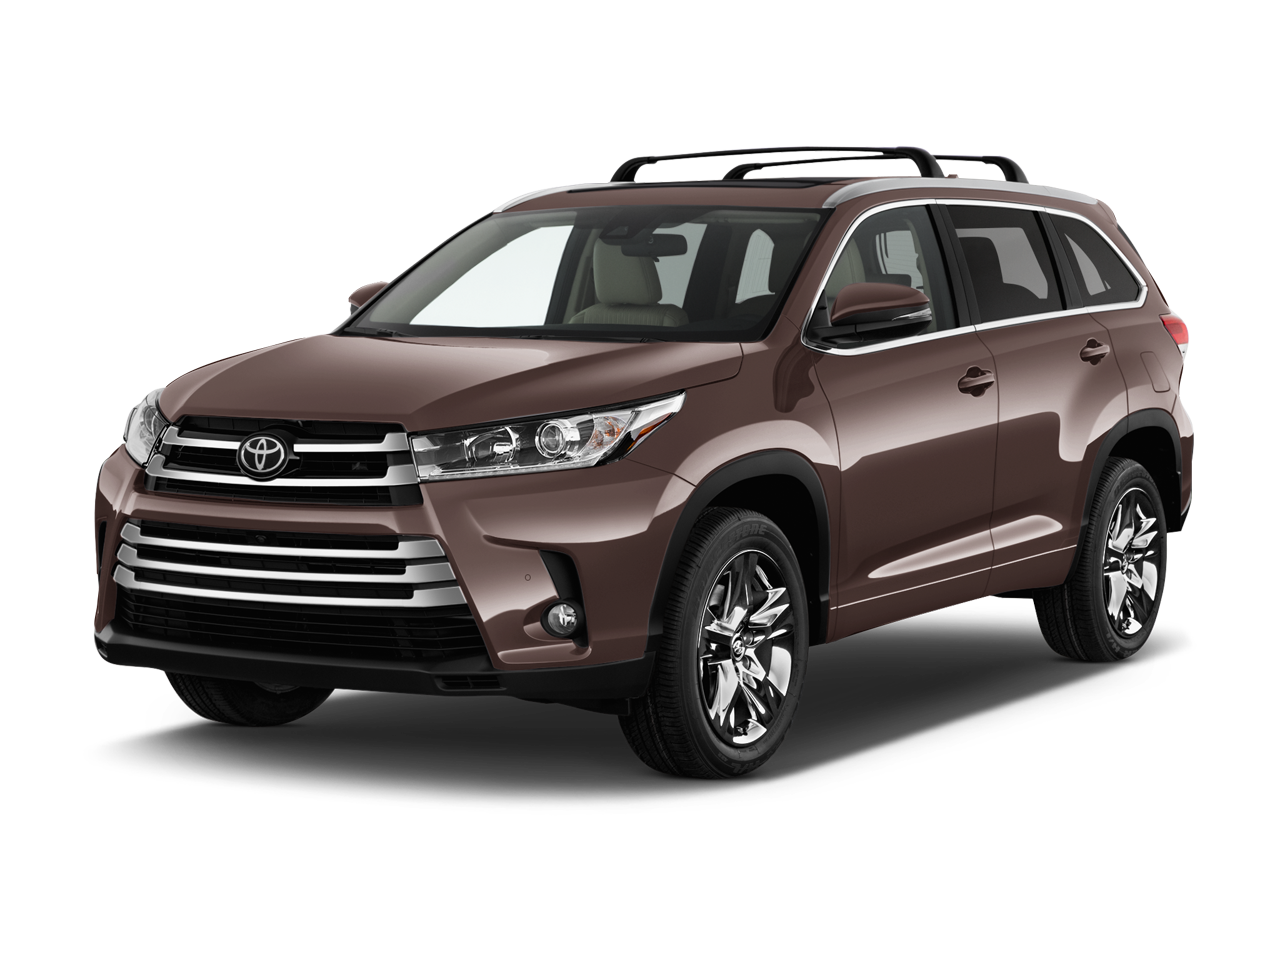 new 2018 toyota highlander limited platinum jefferson city mo near holts summit mo riley toyota. Black Bedroom Furniture Sets. Home Design Ideas